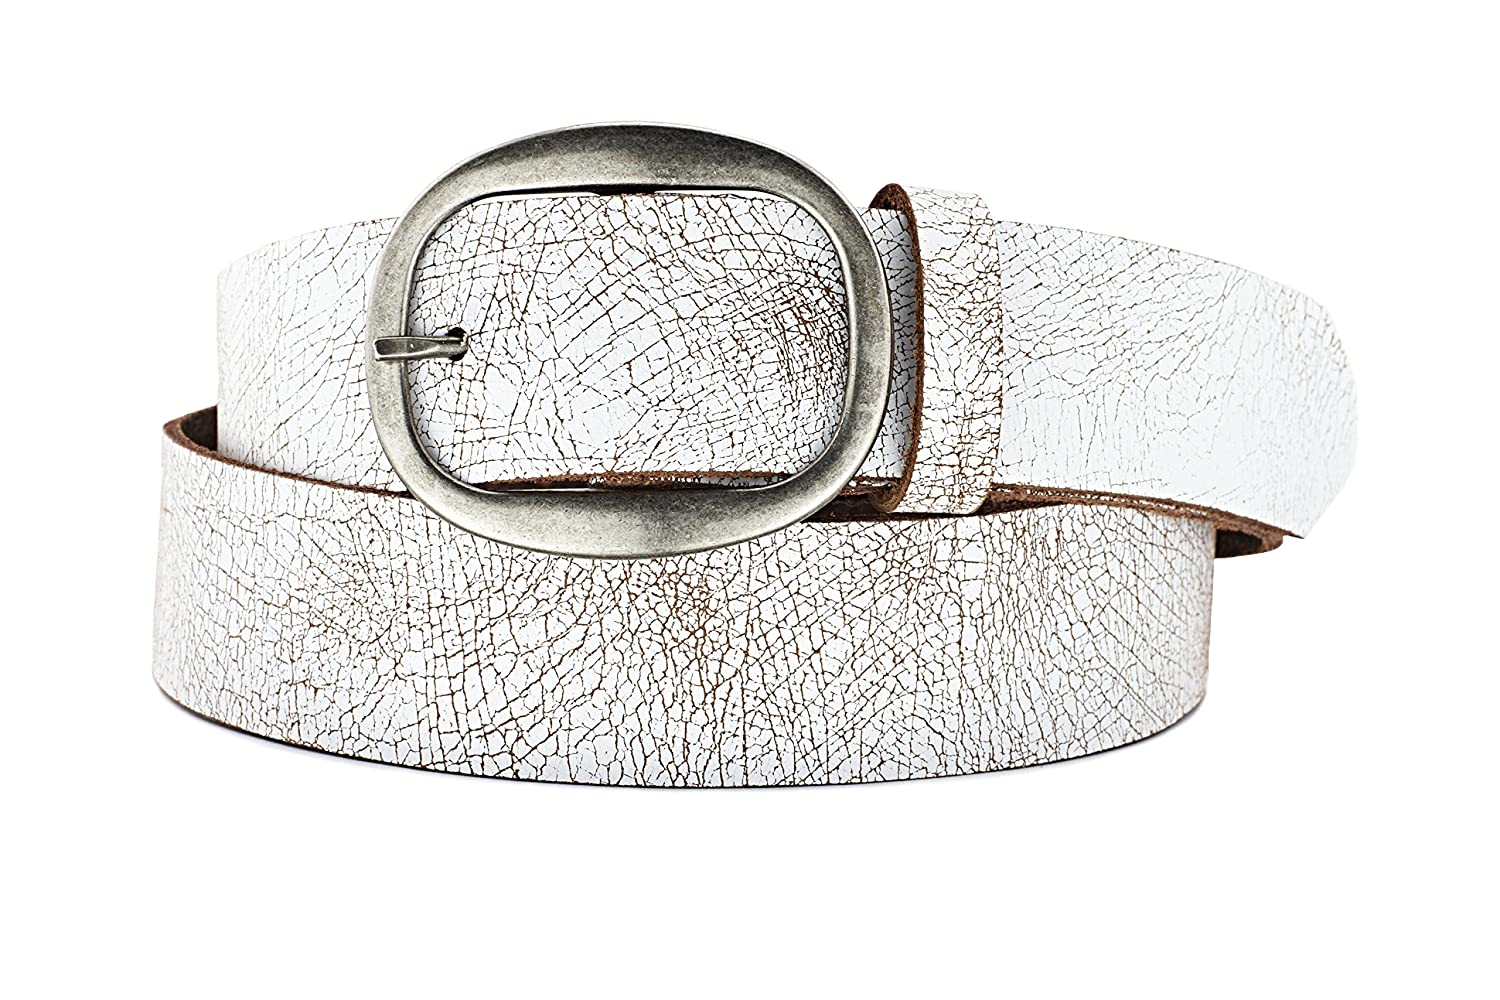 97a28ee8044 Naleeni Womens White Leather Belt with Buckle Options. Made in USA 1.5 Inch  Wide at Amazon Women s Clothing store